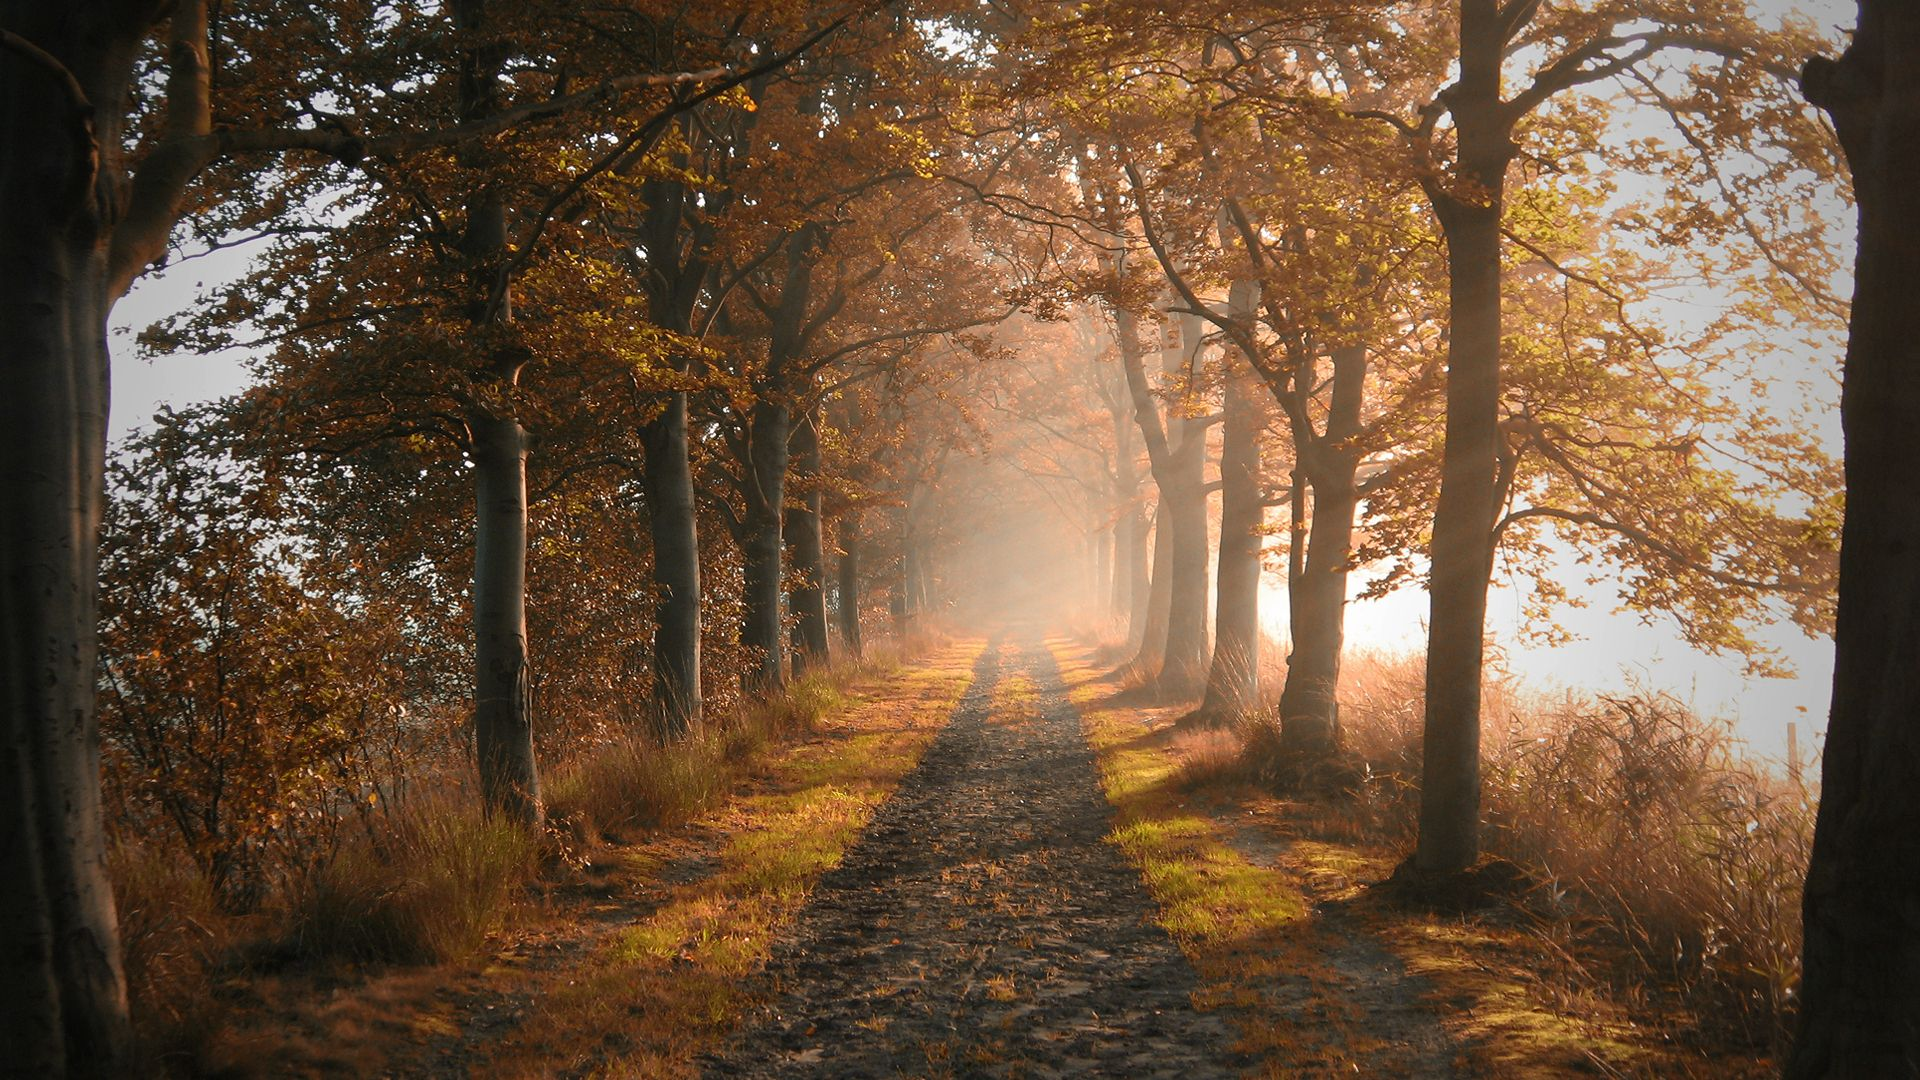 New Beautiful Path Wallpapers View #748484 Wallpapers | RiseWLP